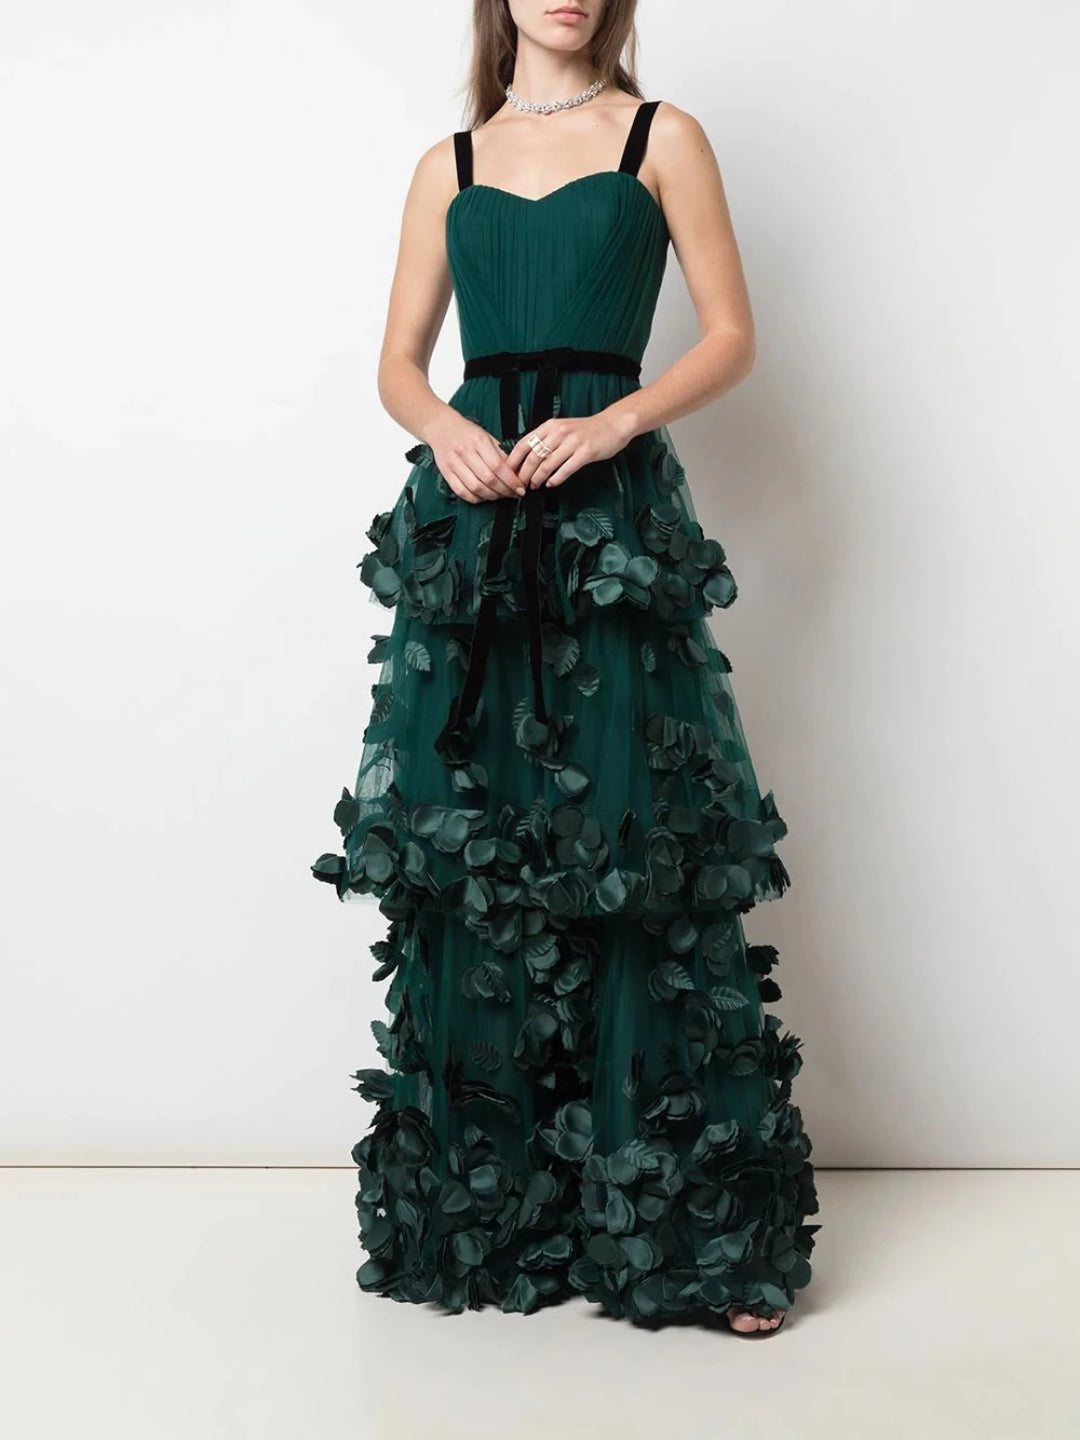 Sleeveless 3-tiered gown